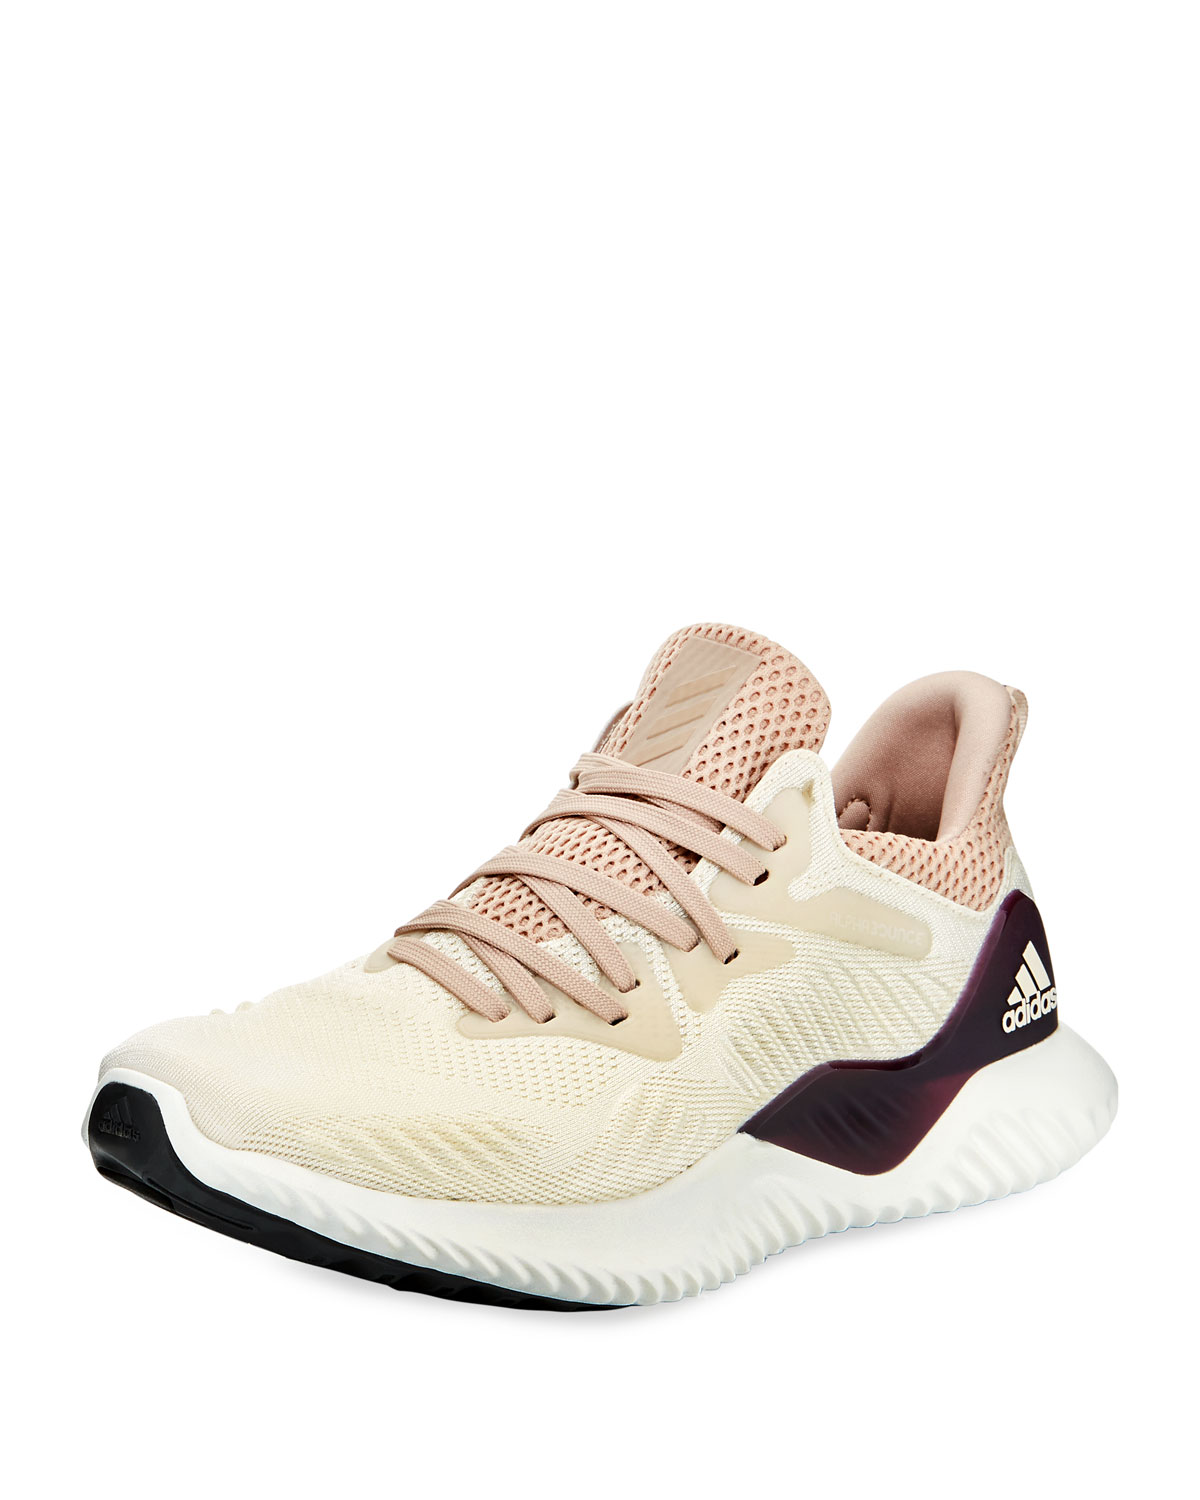 premium selection 4a59d caa8b Adidas Alphabounce Beyond Knit Sneakers